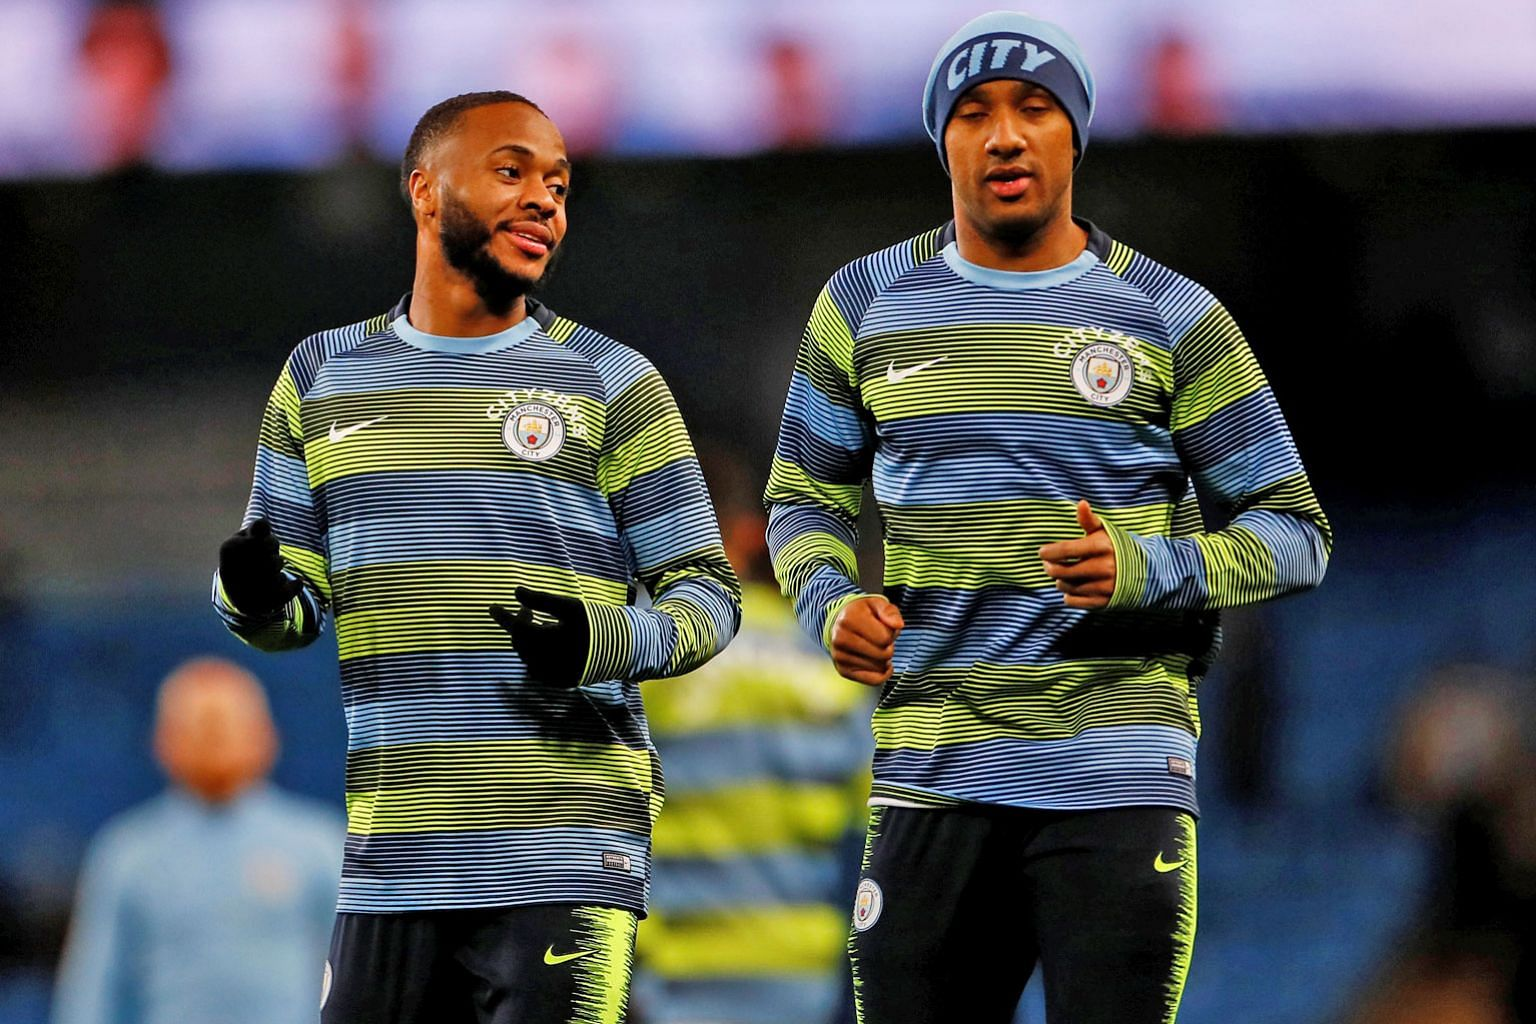 Pep Guardiola has confirmed that his Manchester City players, including Raheem Sterling (left) and Fabian Delph, have a clean bill of health.